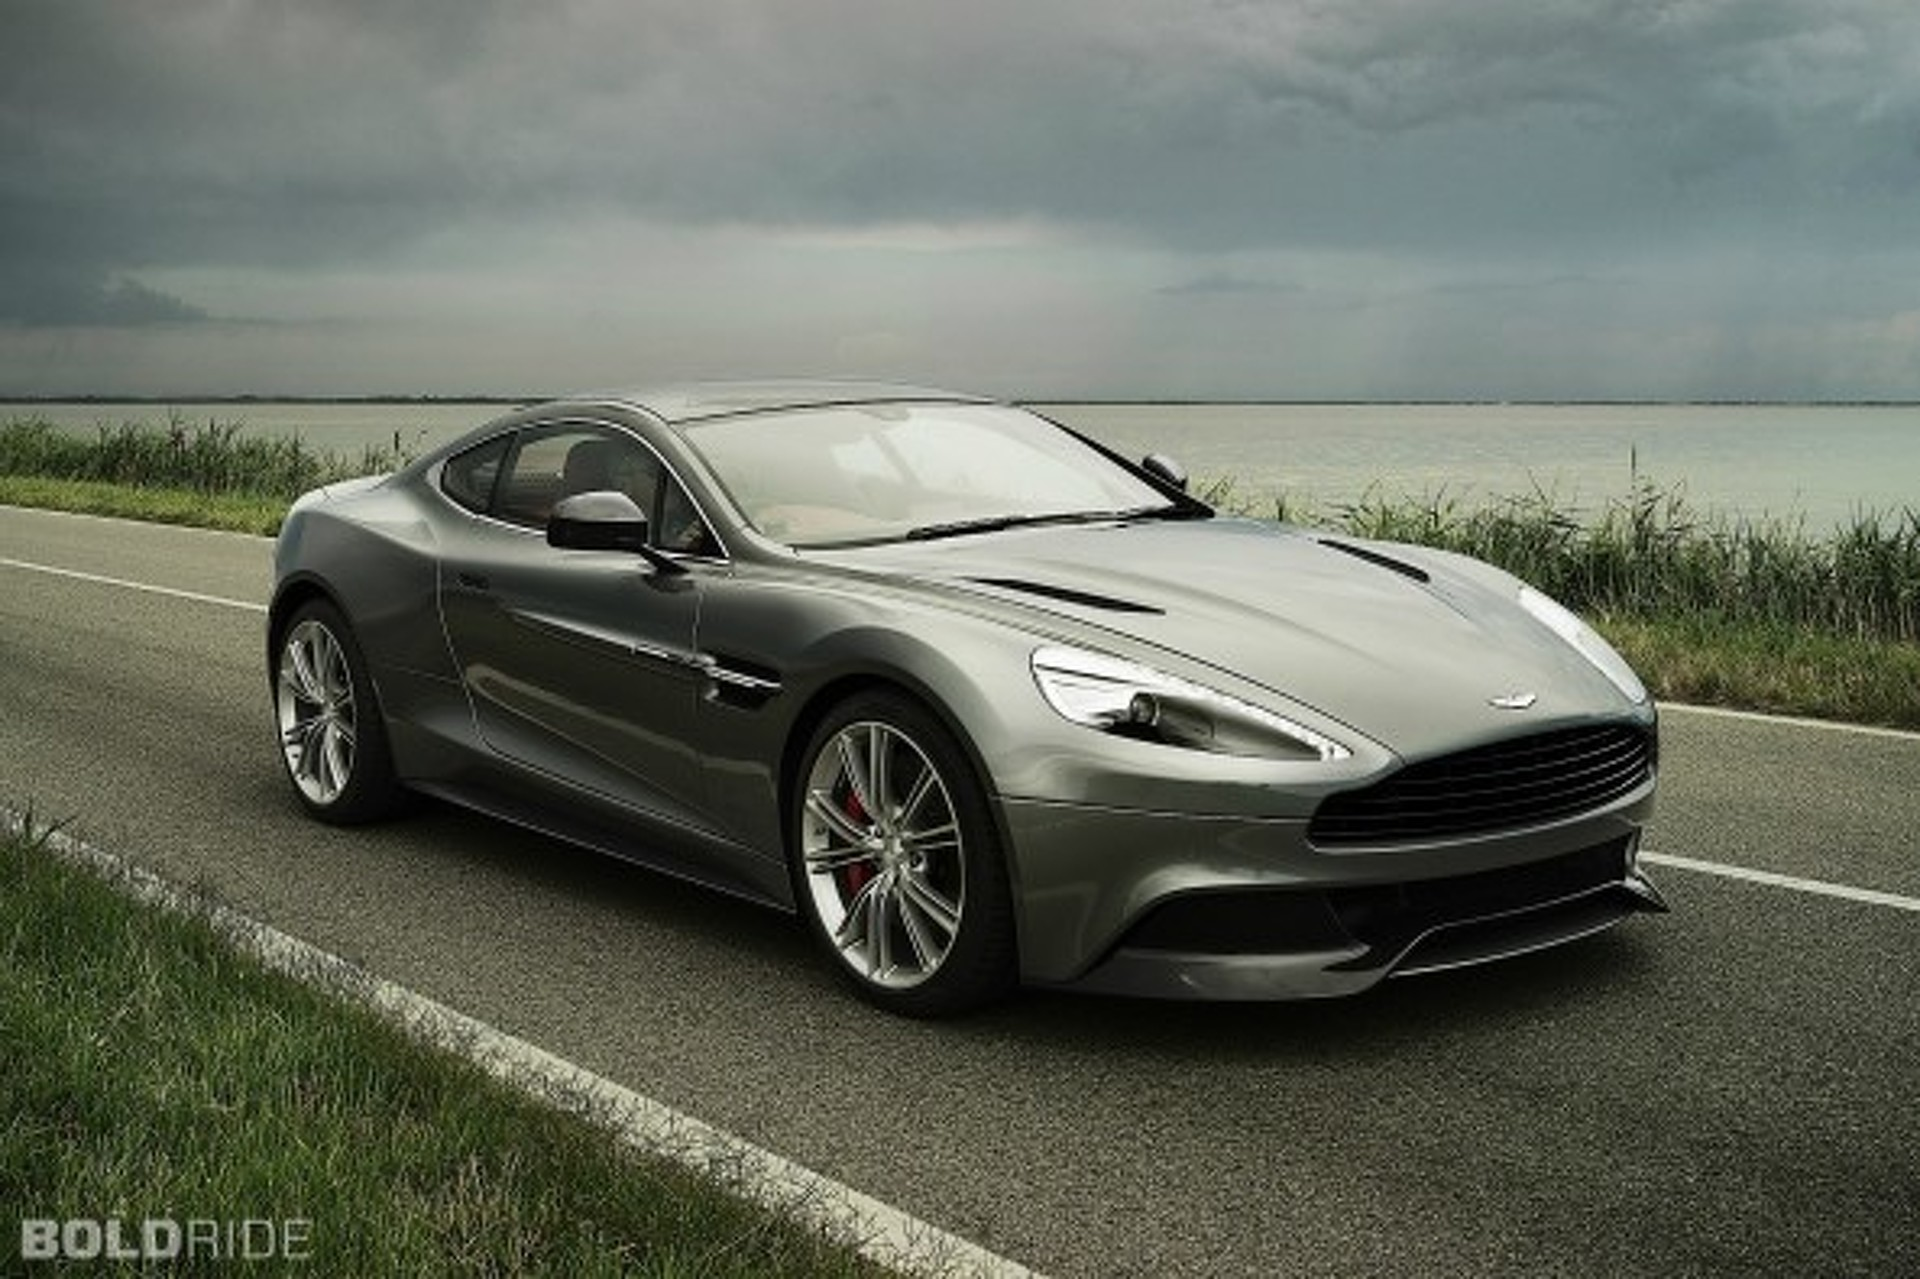 20 Best Aston Martin Wallpapers